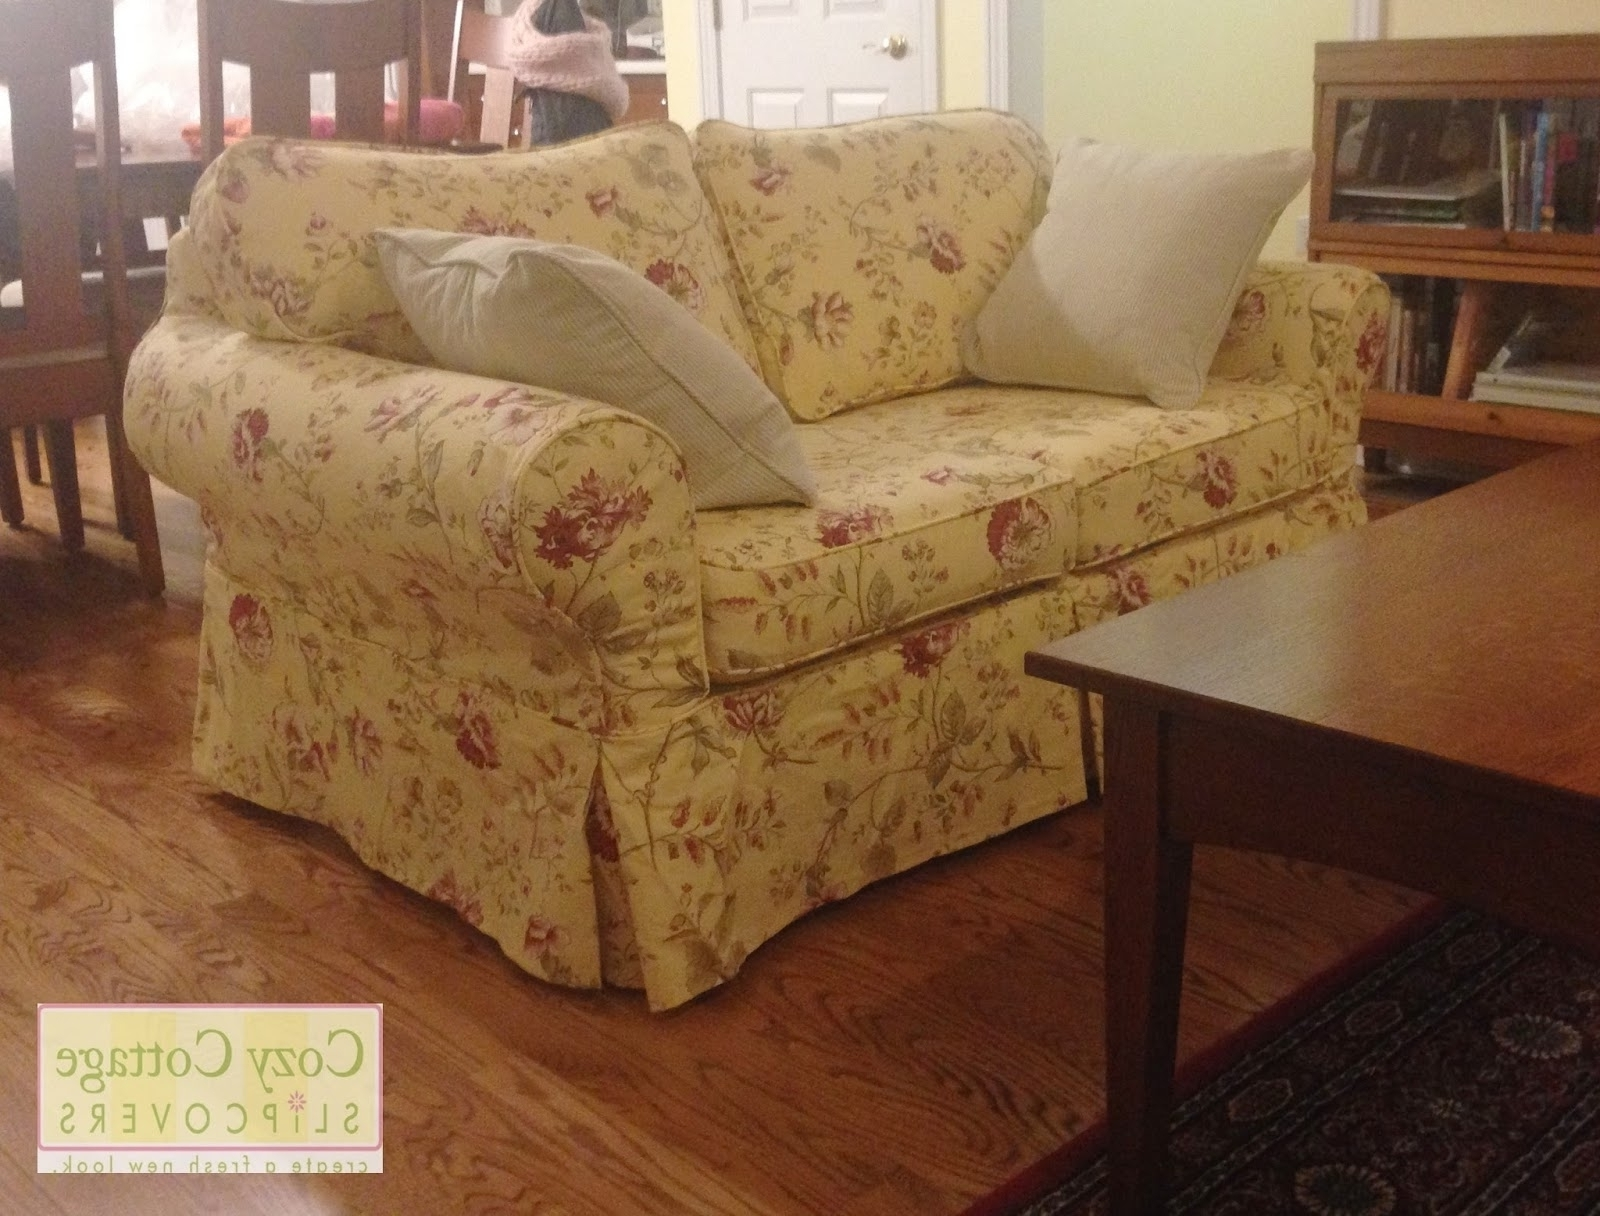 Country Cottage Sofas And Chairs Pertaining To Fashionable Country Cottage Sofas And Chairs Cottag Country Cottage Sofas And (View 7 of 20)